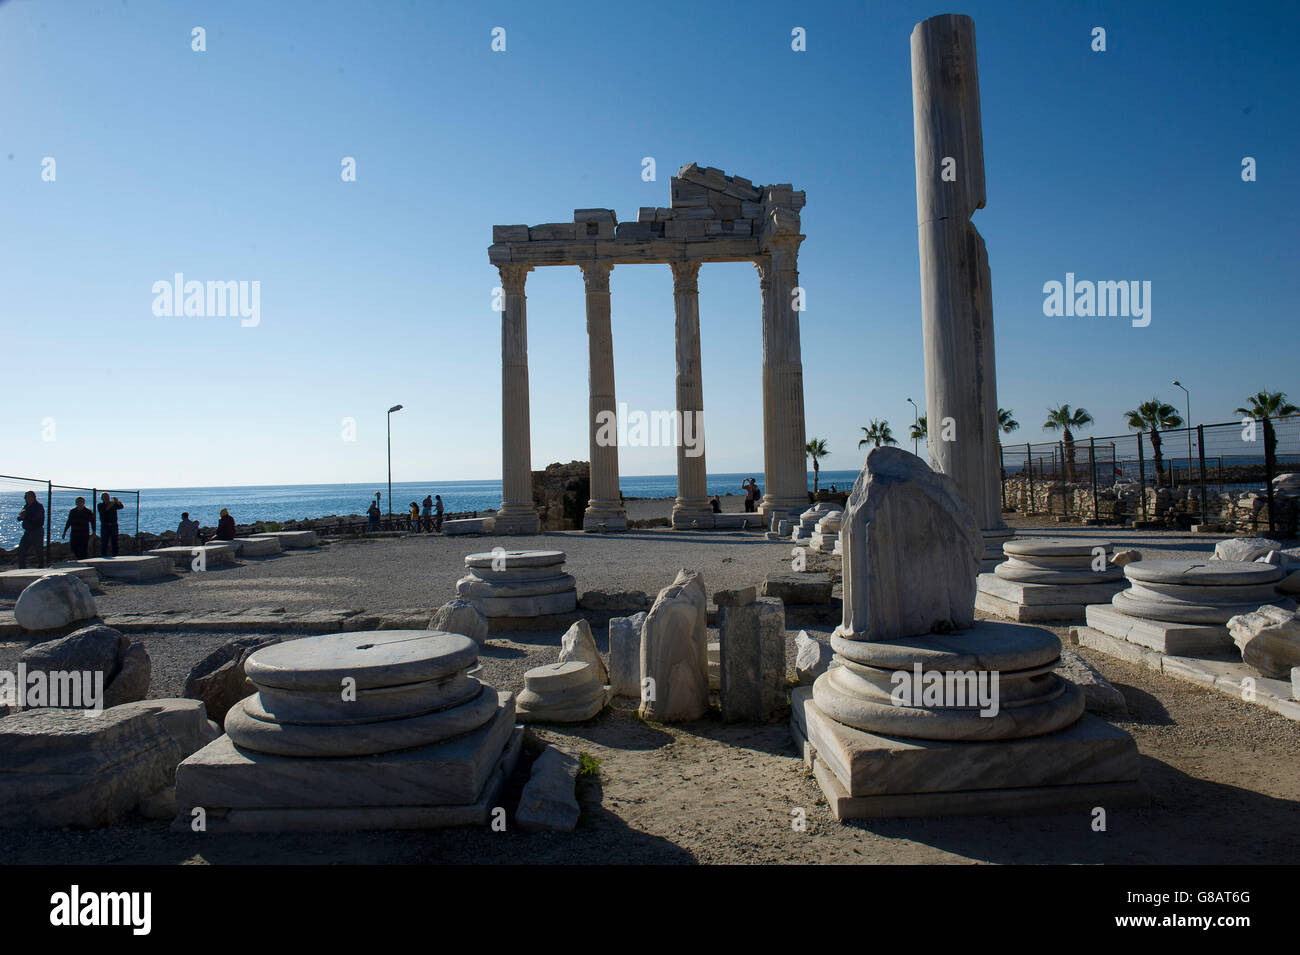 Ruins of Temple of Apollo in Side, Antalya province, on the southern Mediterranean coast of Turkey - Stock Image